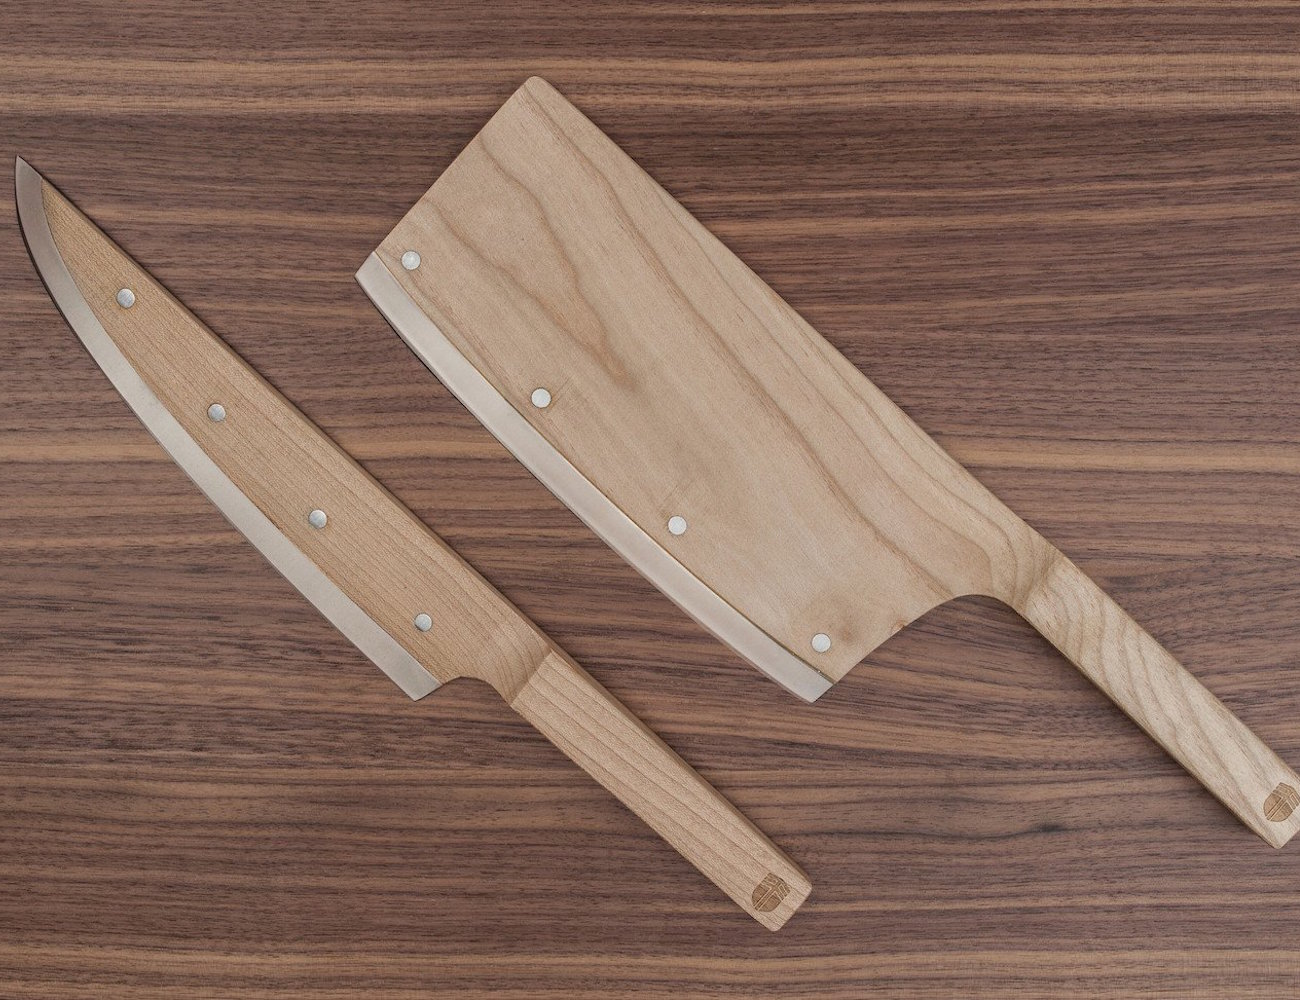 maple knife set kitchen knives perspective review cooks knife paring knife carving fork